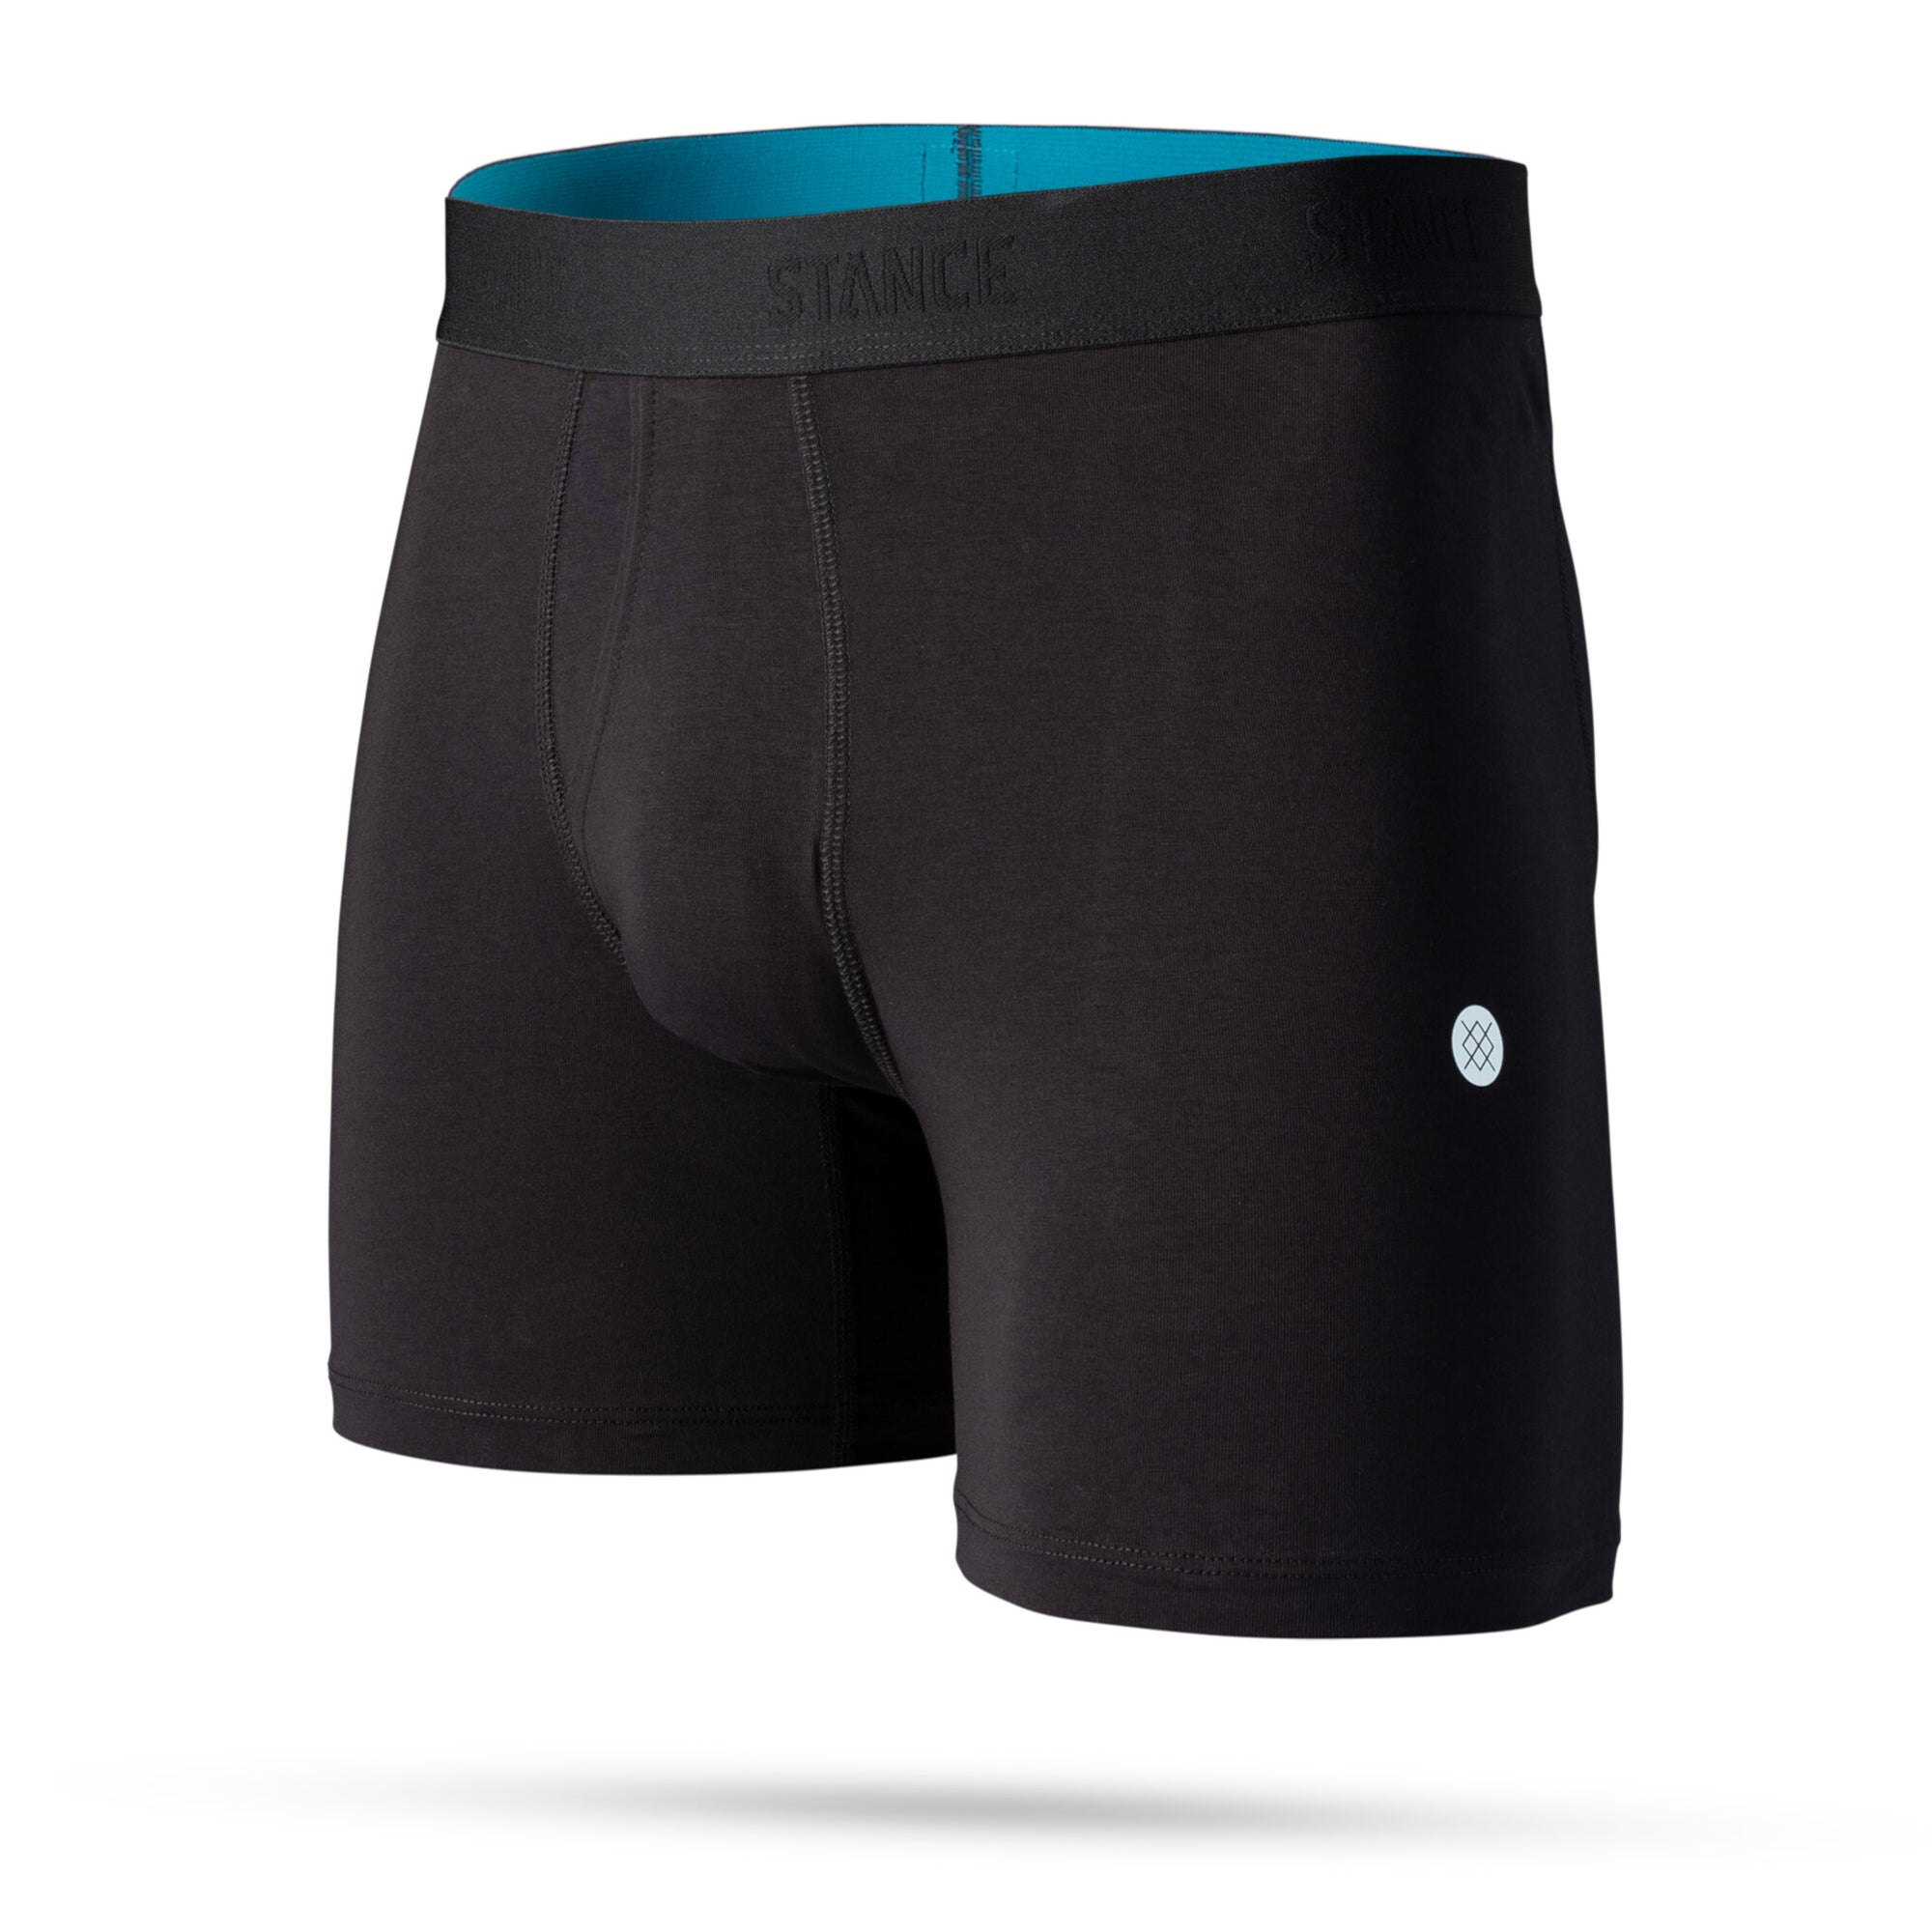 Stance Wholester Standard ST 6in Men's Boxer Briefs